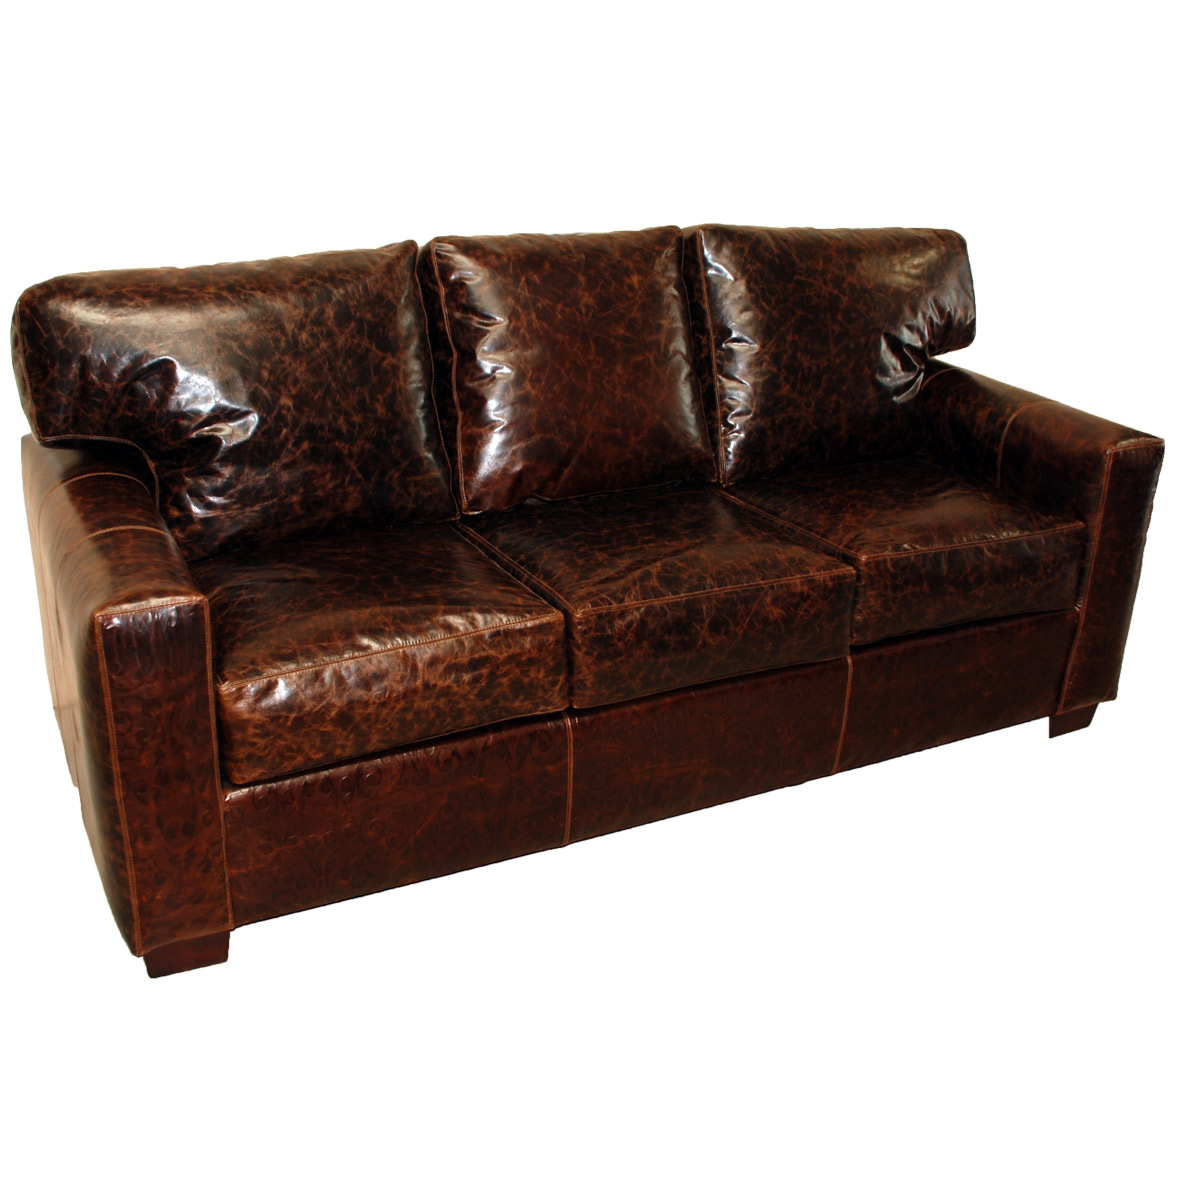 Black Forest Decor Tucson straightback sofa